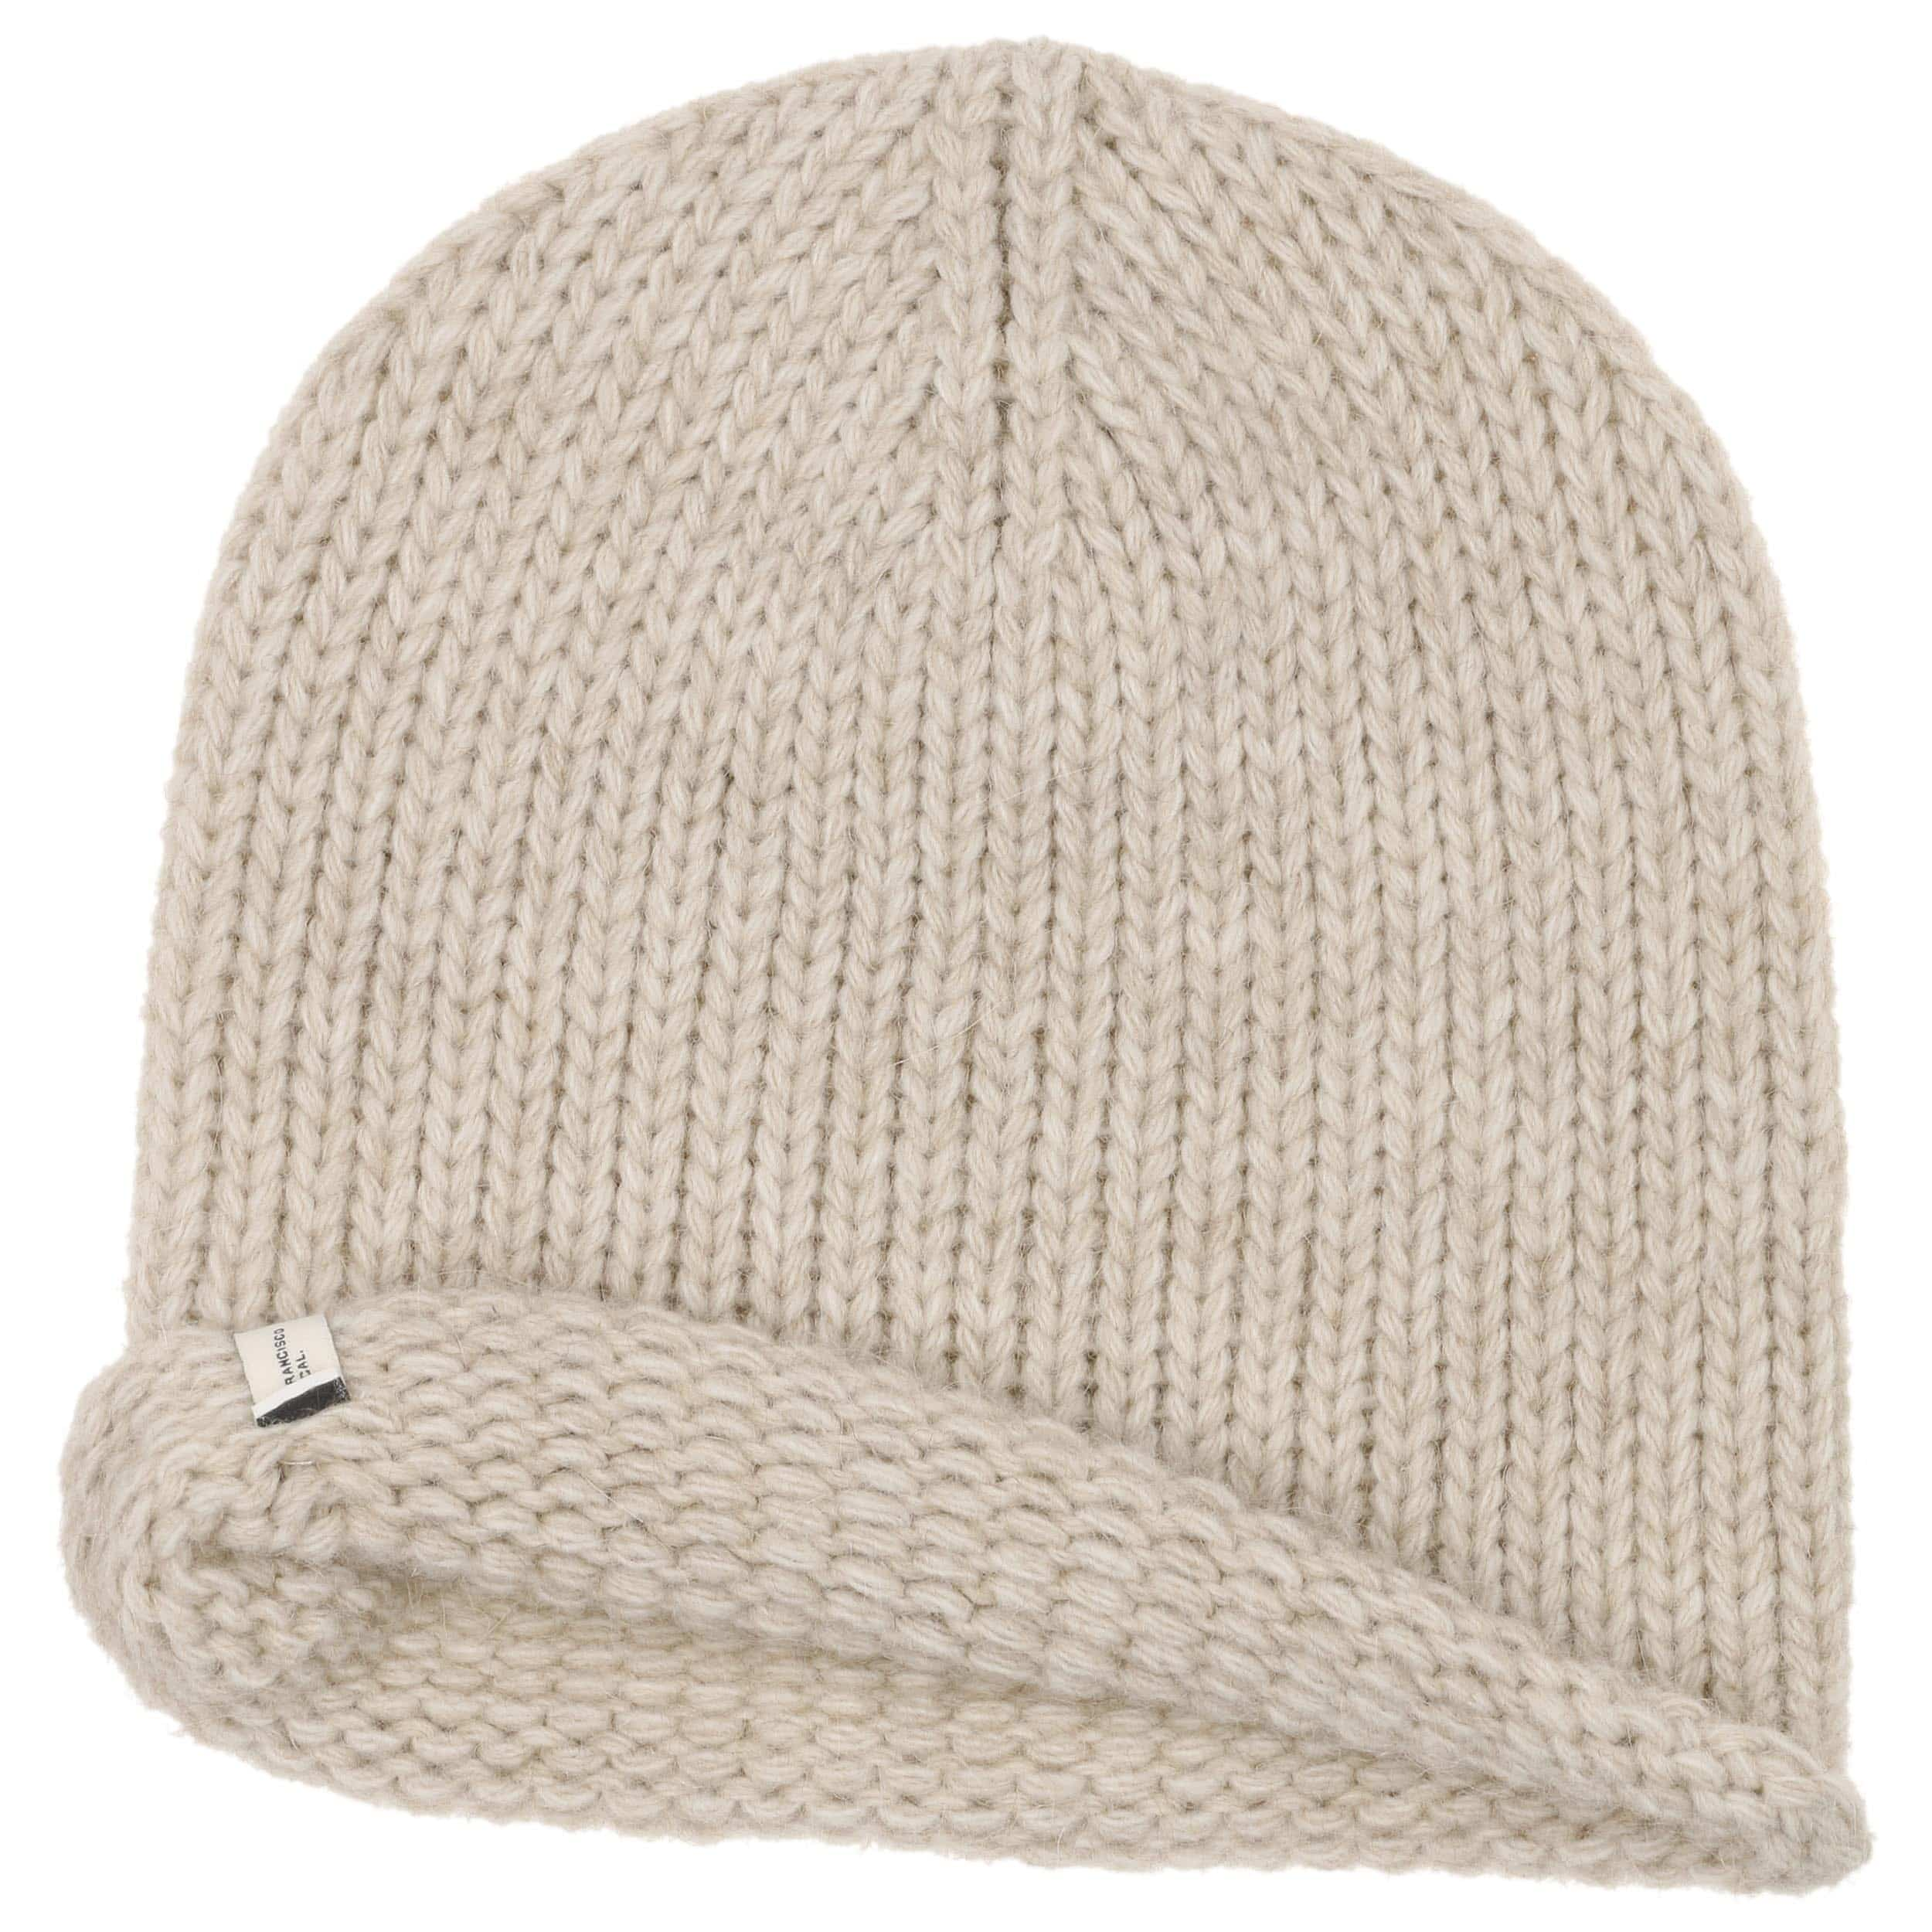 ... Seasonal Beanie by Levi´s - light blue 1 ... 5e9cfde56aff